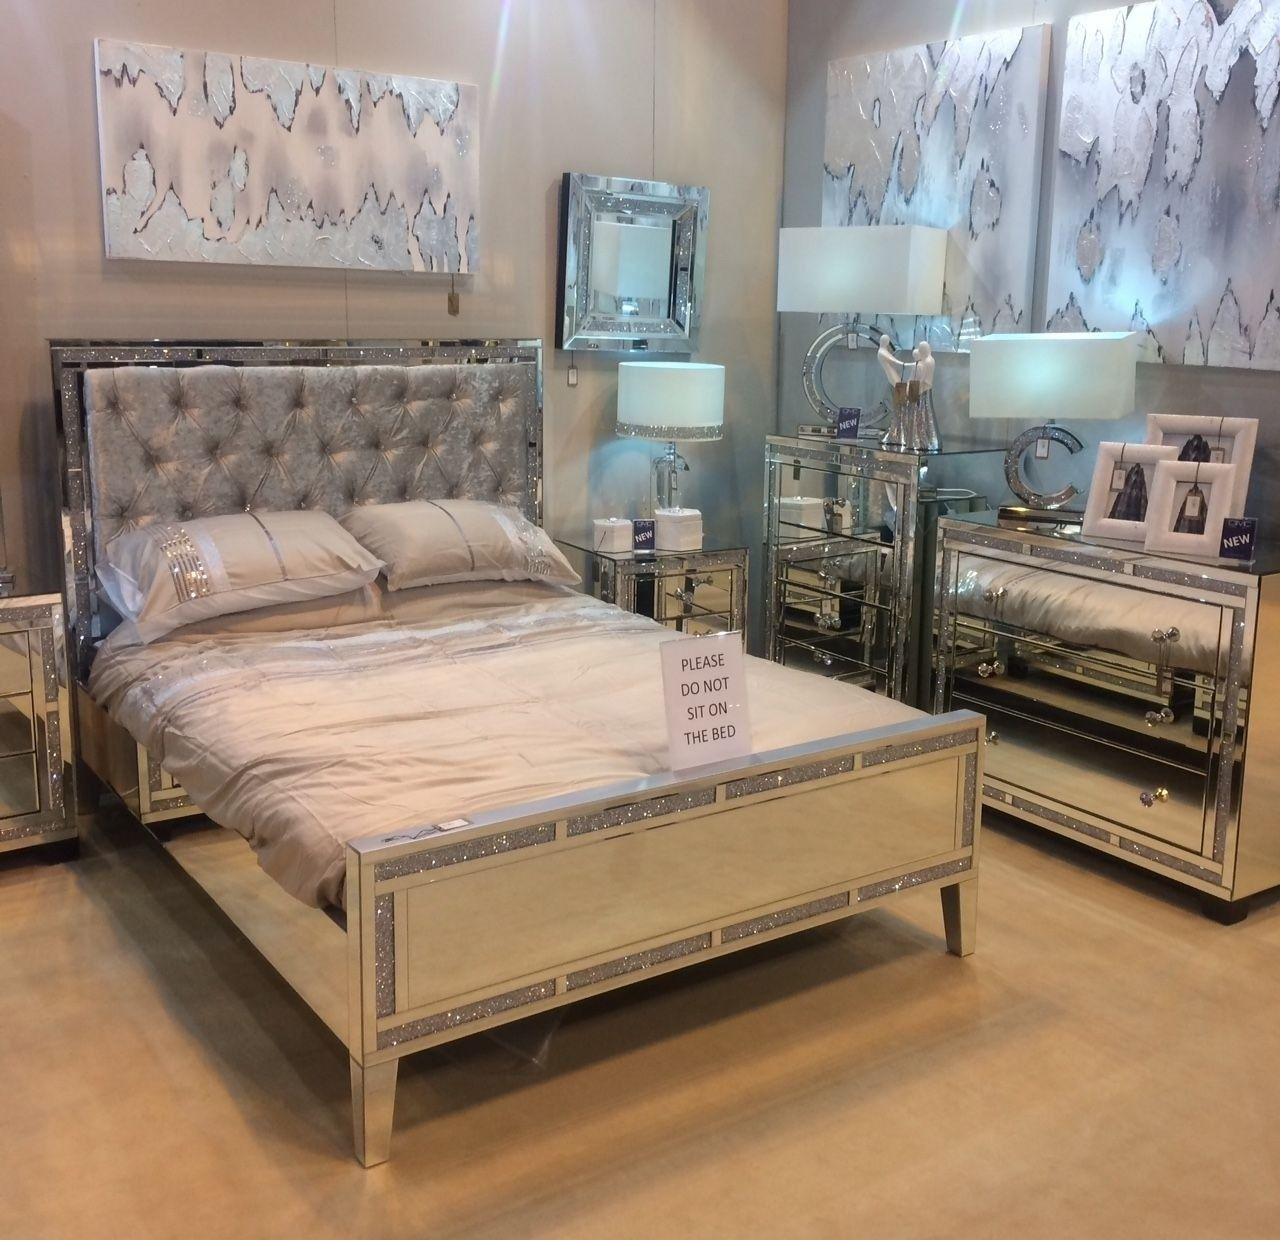 Pin By Maria Luisa On Rooms In 2021 Mirrored Bedroom Furniture King Size Bed Frame Glam Bedroom Decor